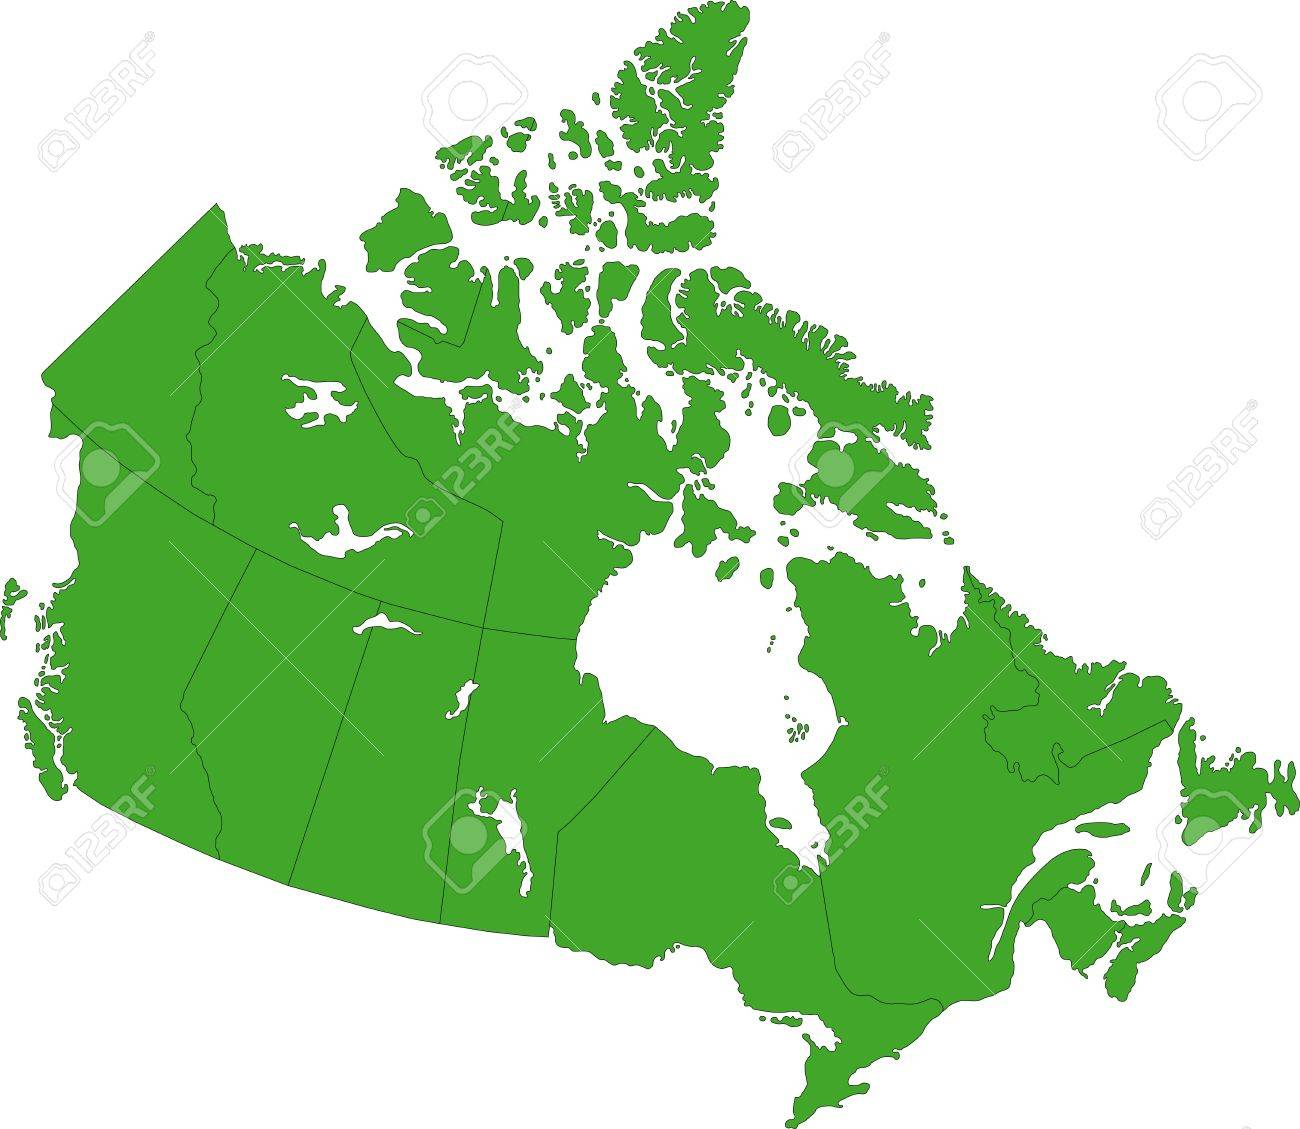 Map Of Canada With Capital Cities And Provinces.Green Canada Map With Provinces And Capital Cities